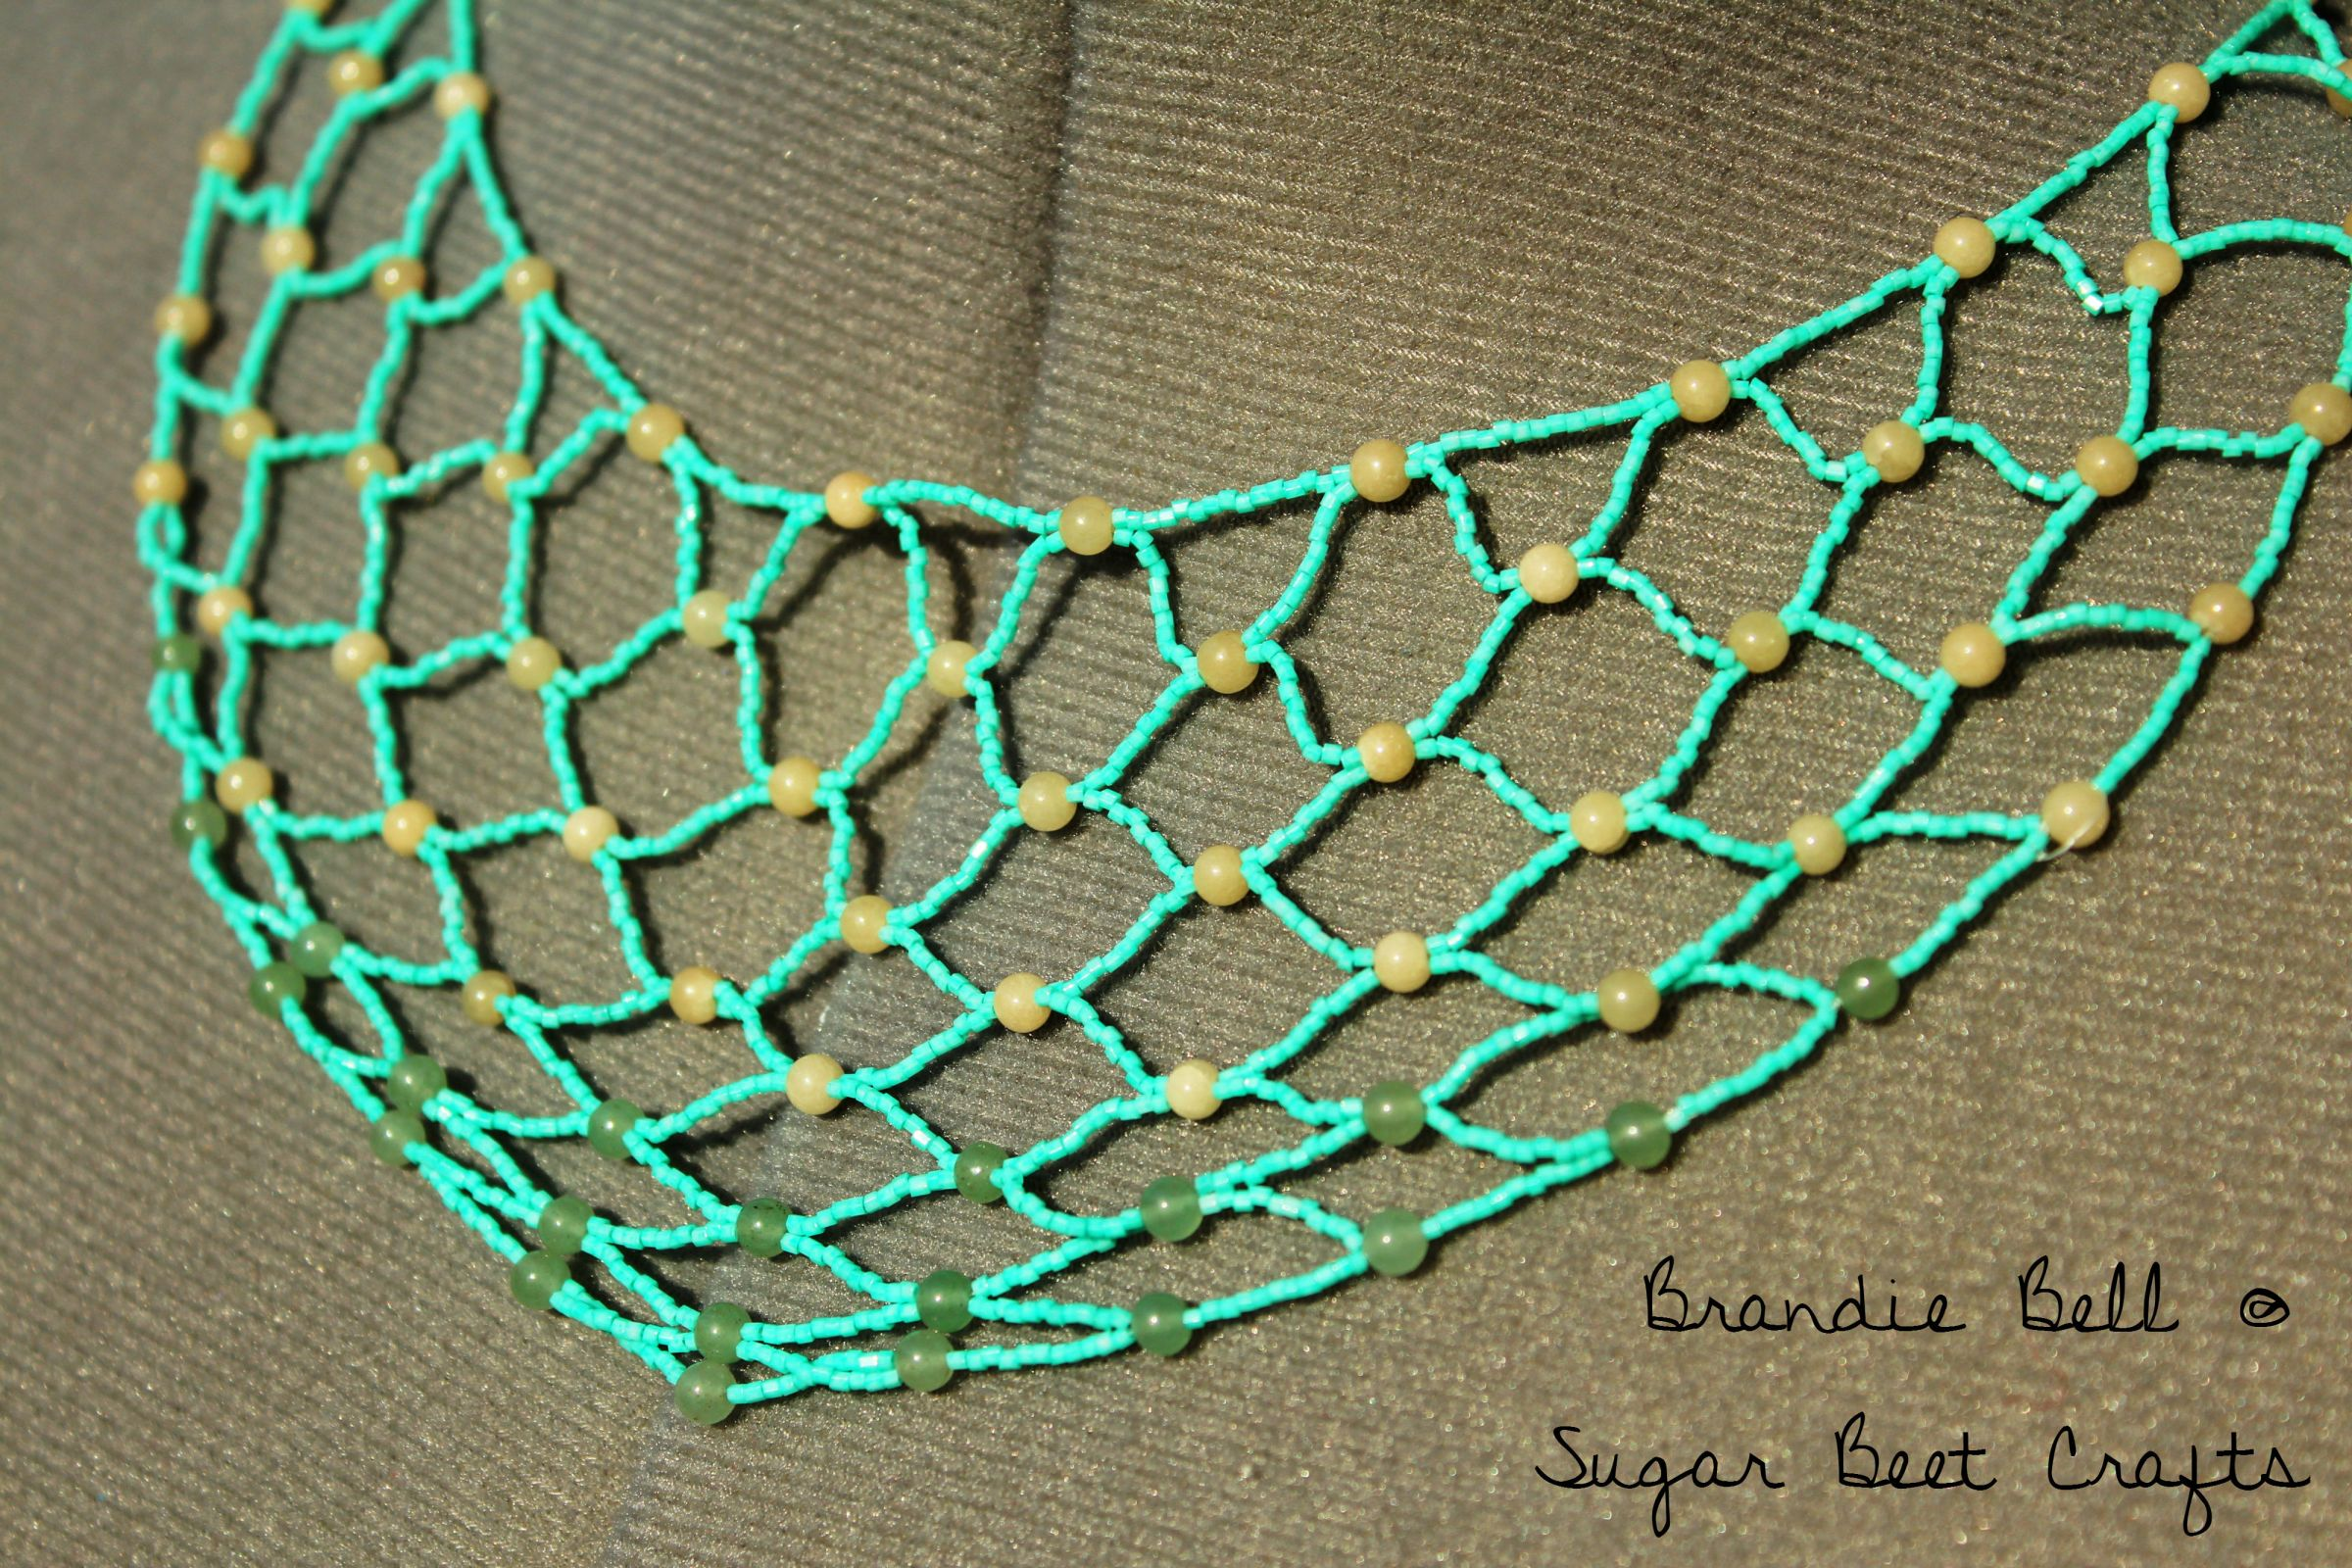 Net Necklace - Handmade